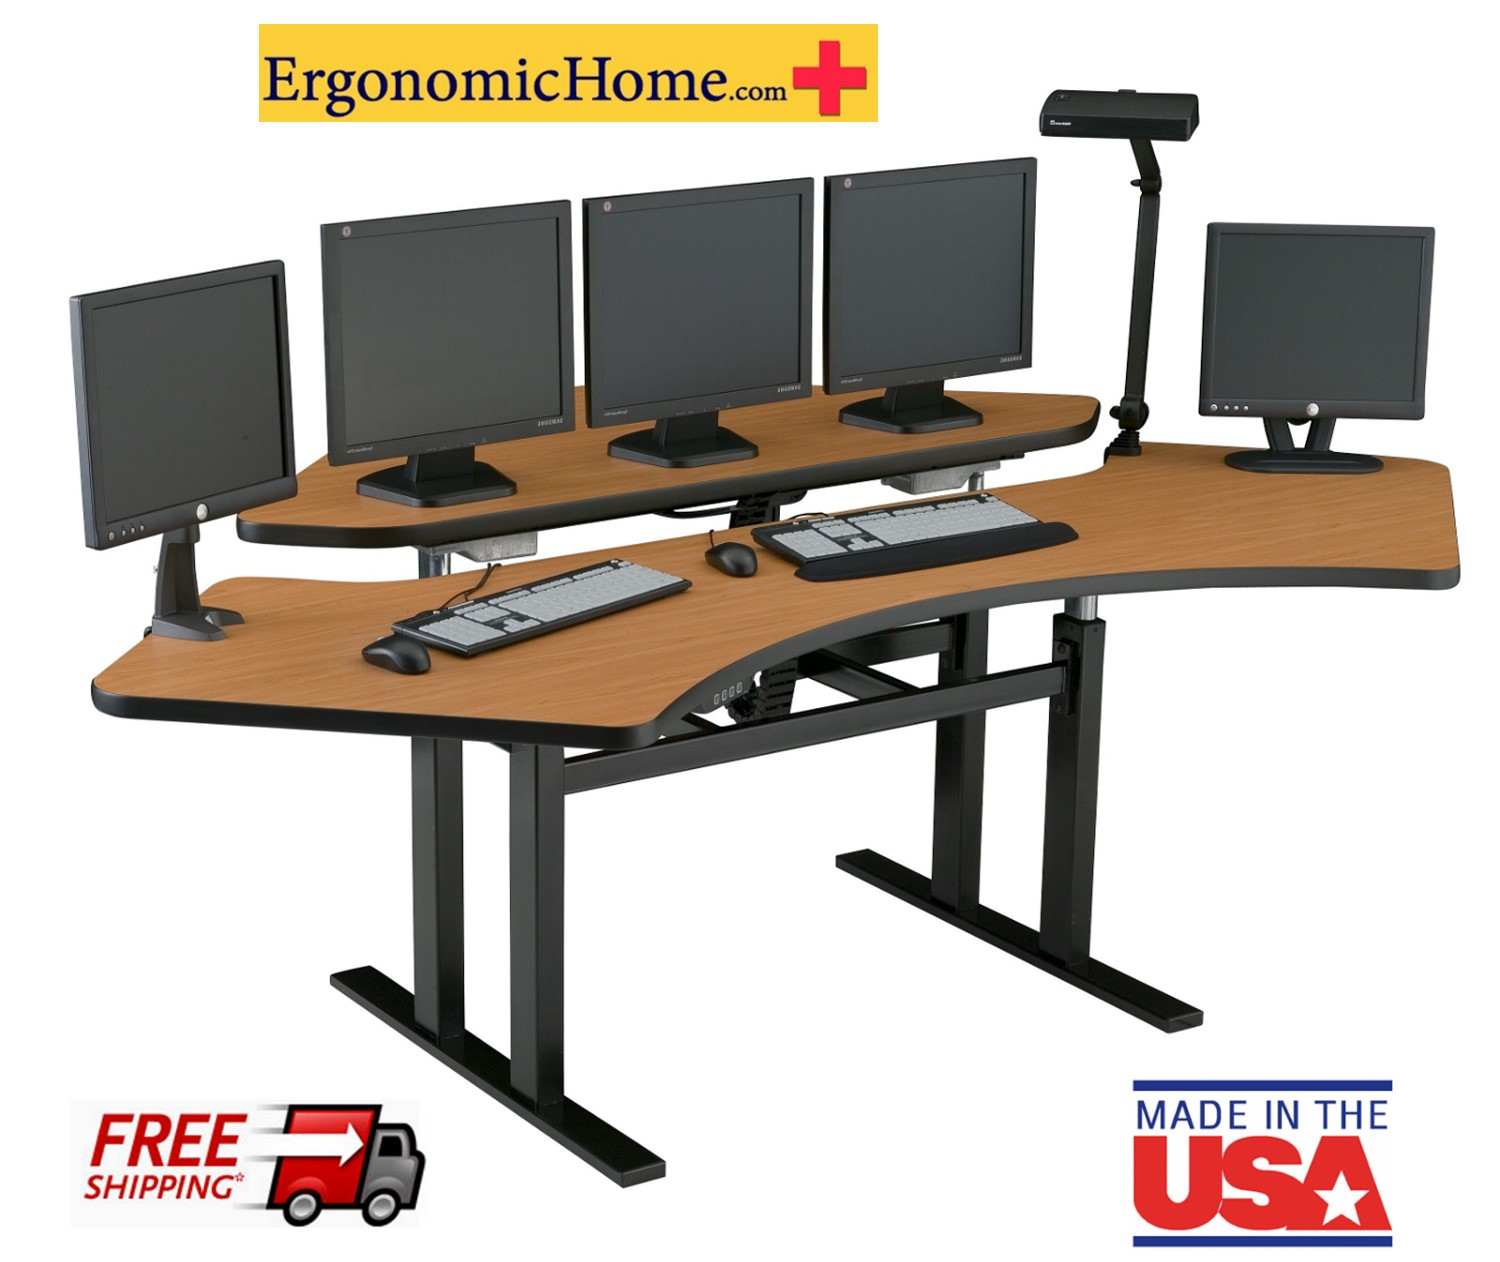 ERGONOMIC HOME CORNER COMPUTER DESK #CNR-7273. MADE IN USA.